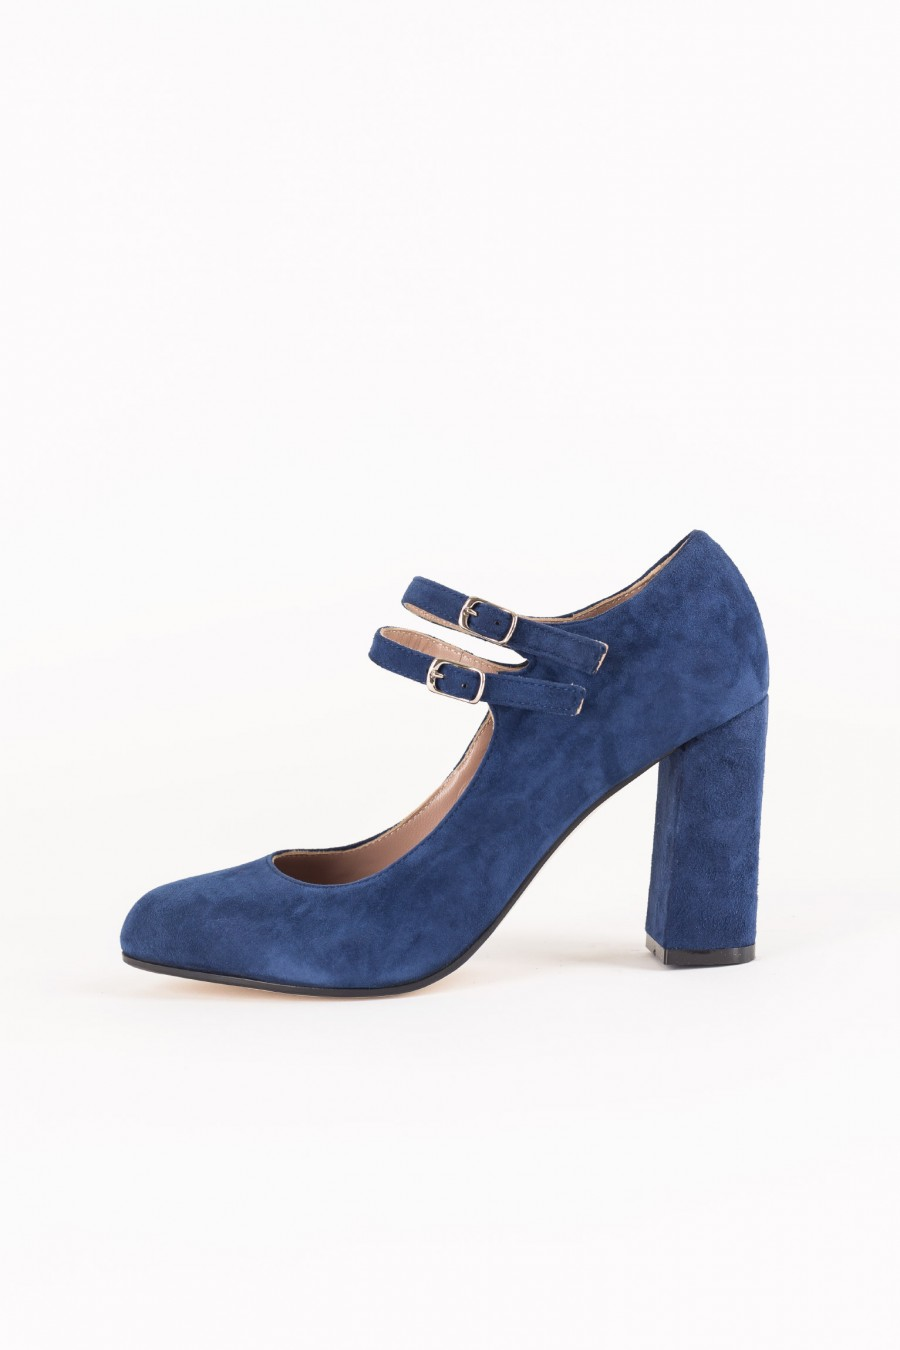 Blue suede Mary Jane with double buckle